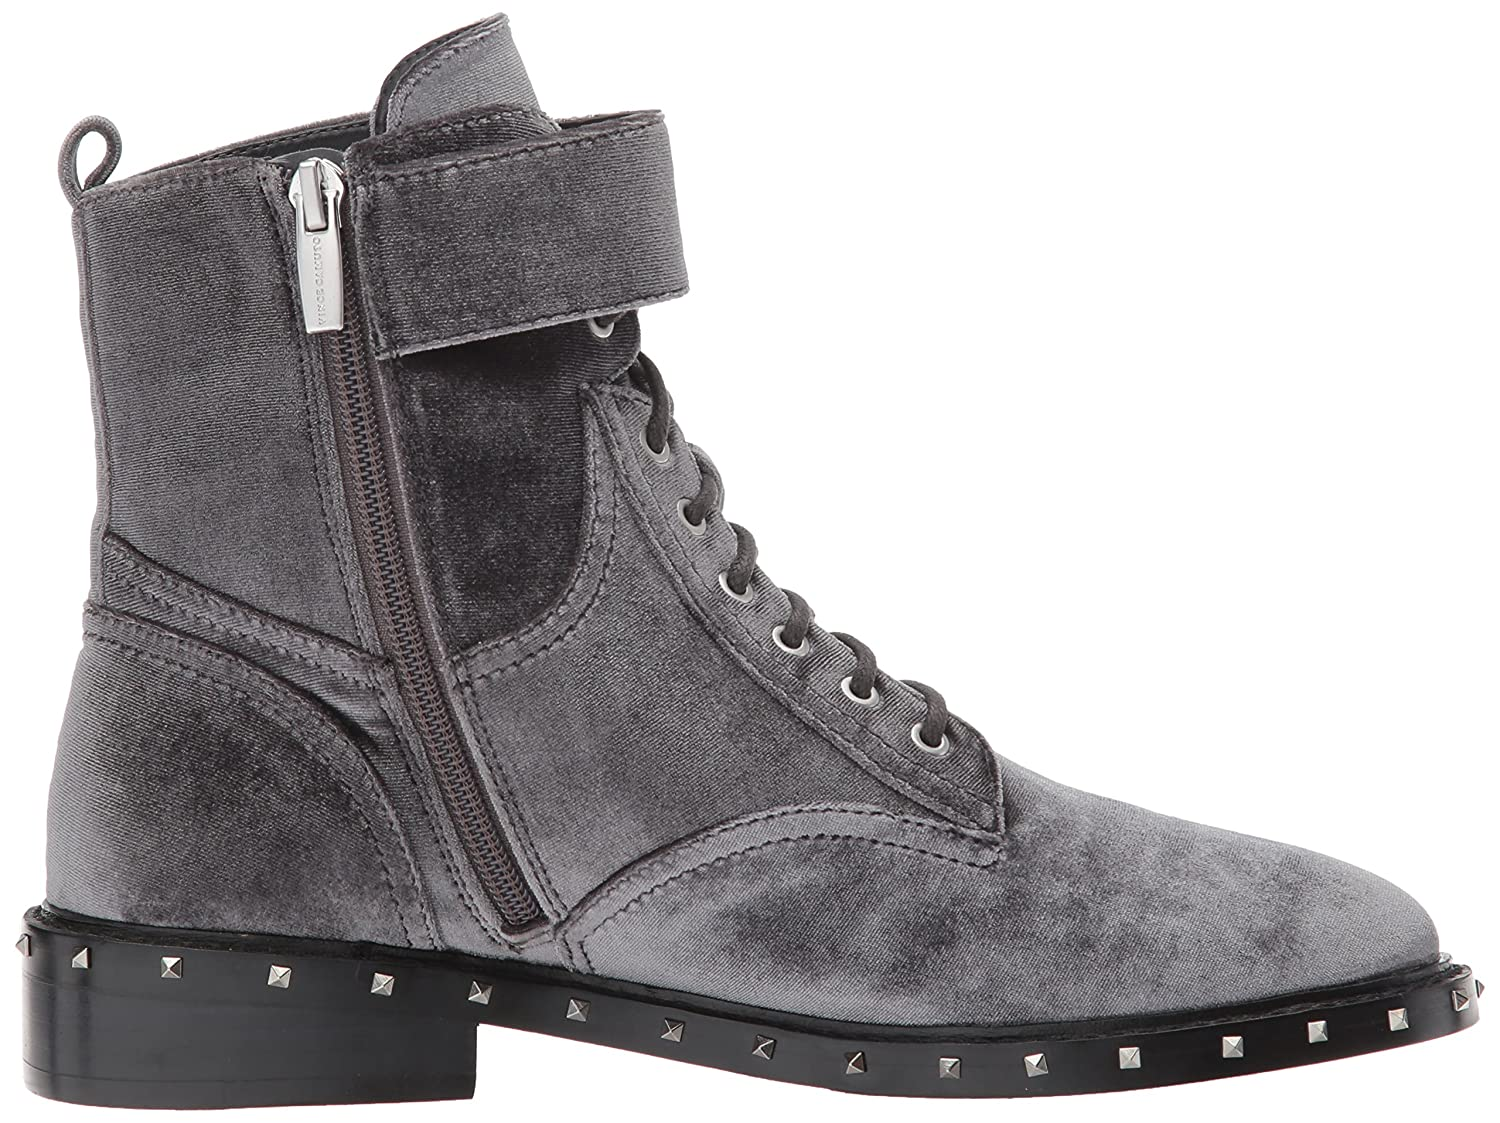 Vince Camuto 8 Women's Talorini Motorcycle Boot B072C2X7MR 8 Camuto B(M) US|Granite Peak c9ff4a